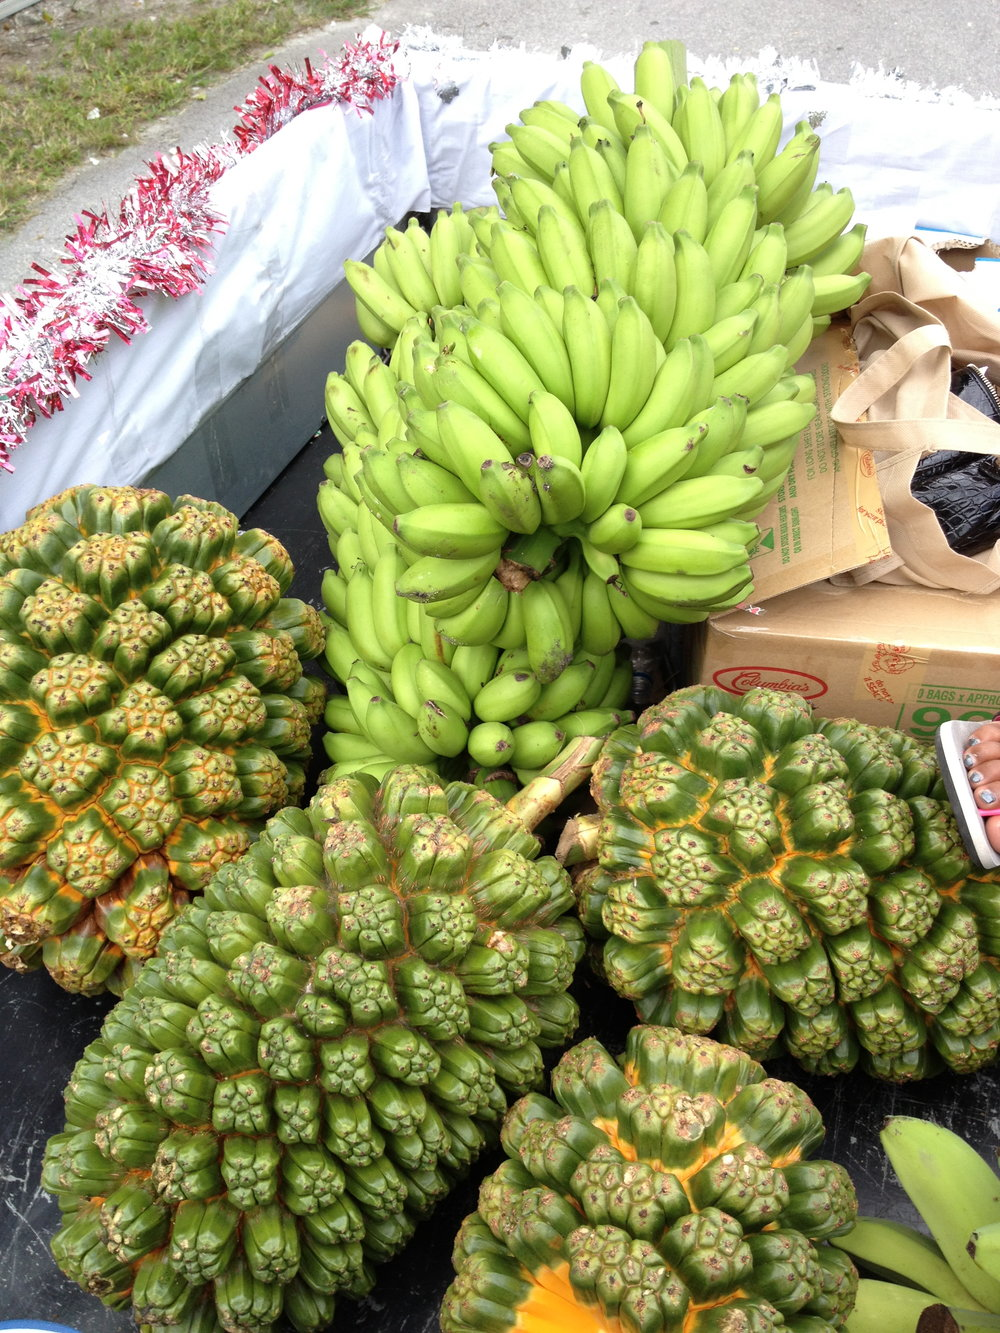 Pandanus and bananas